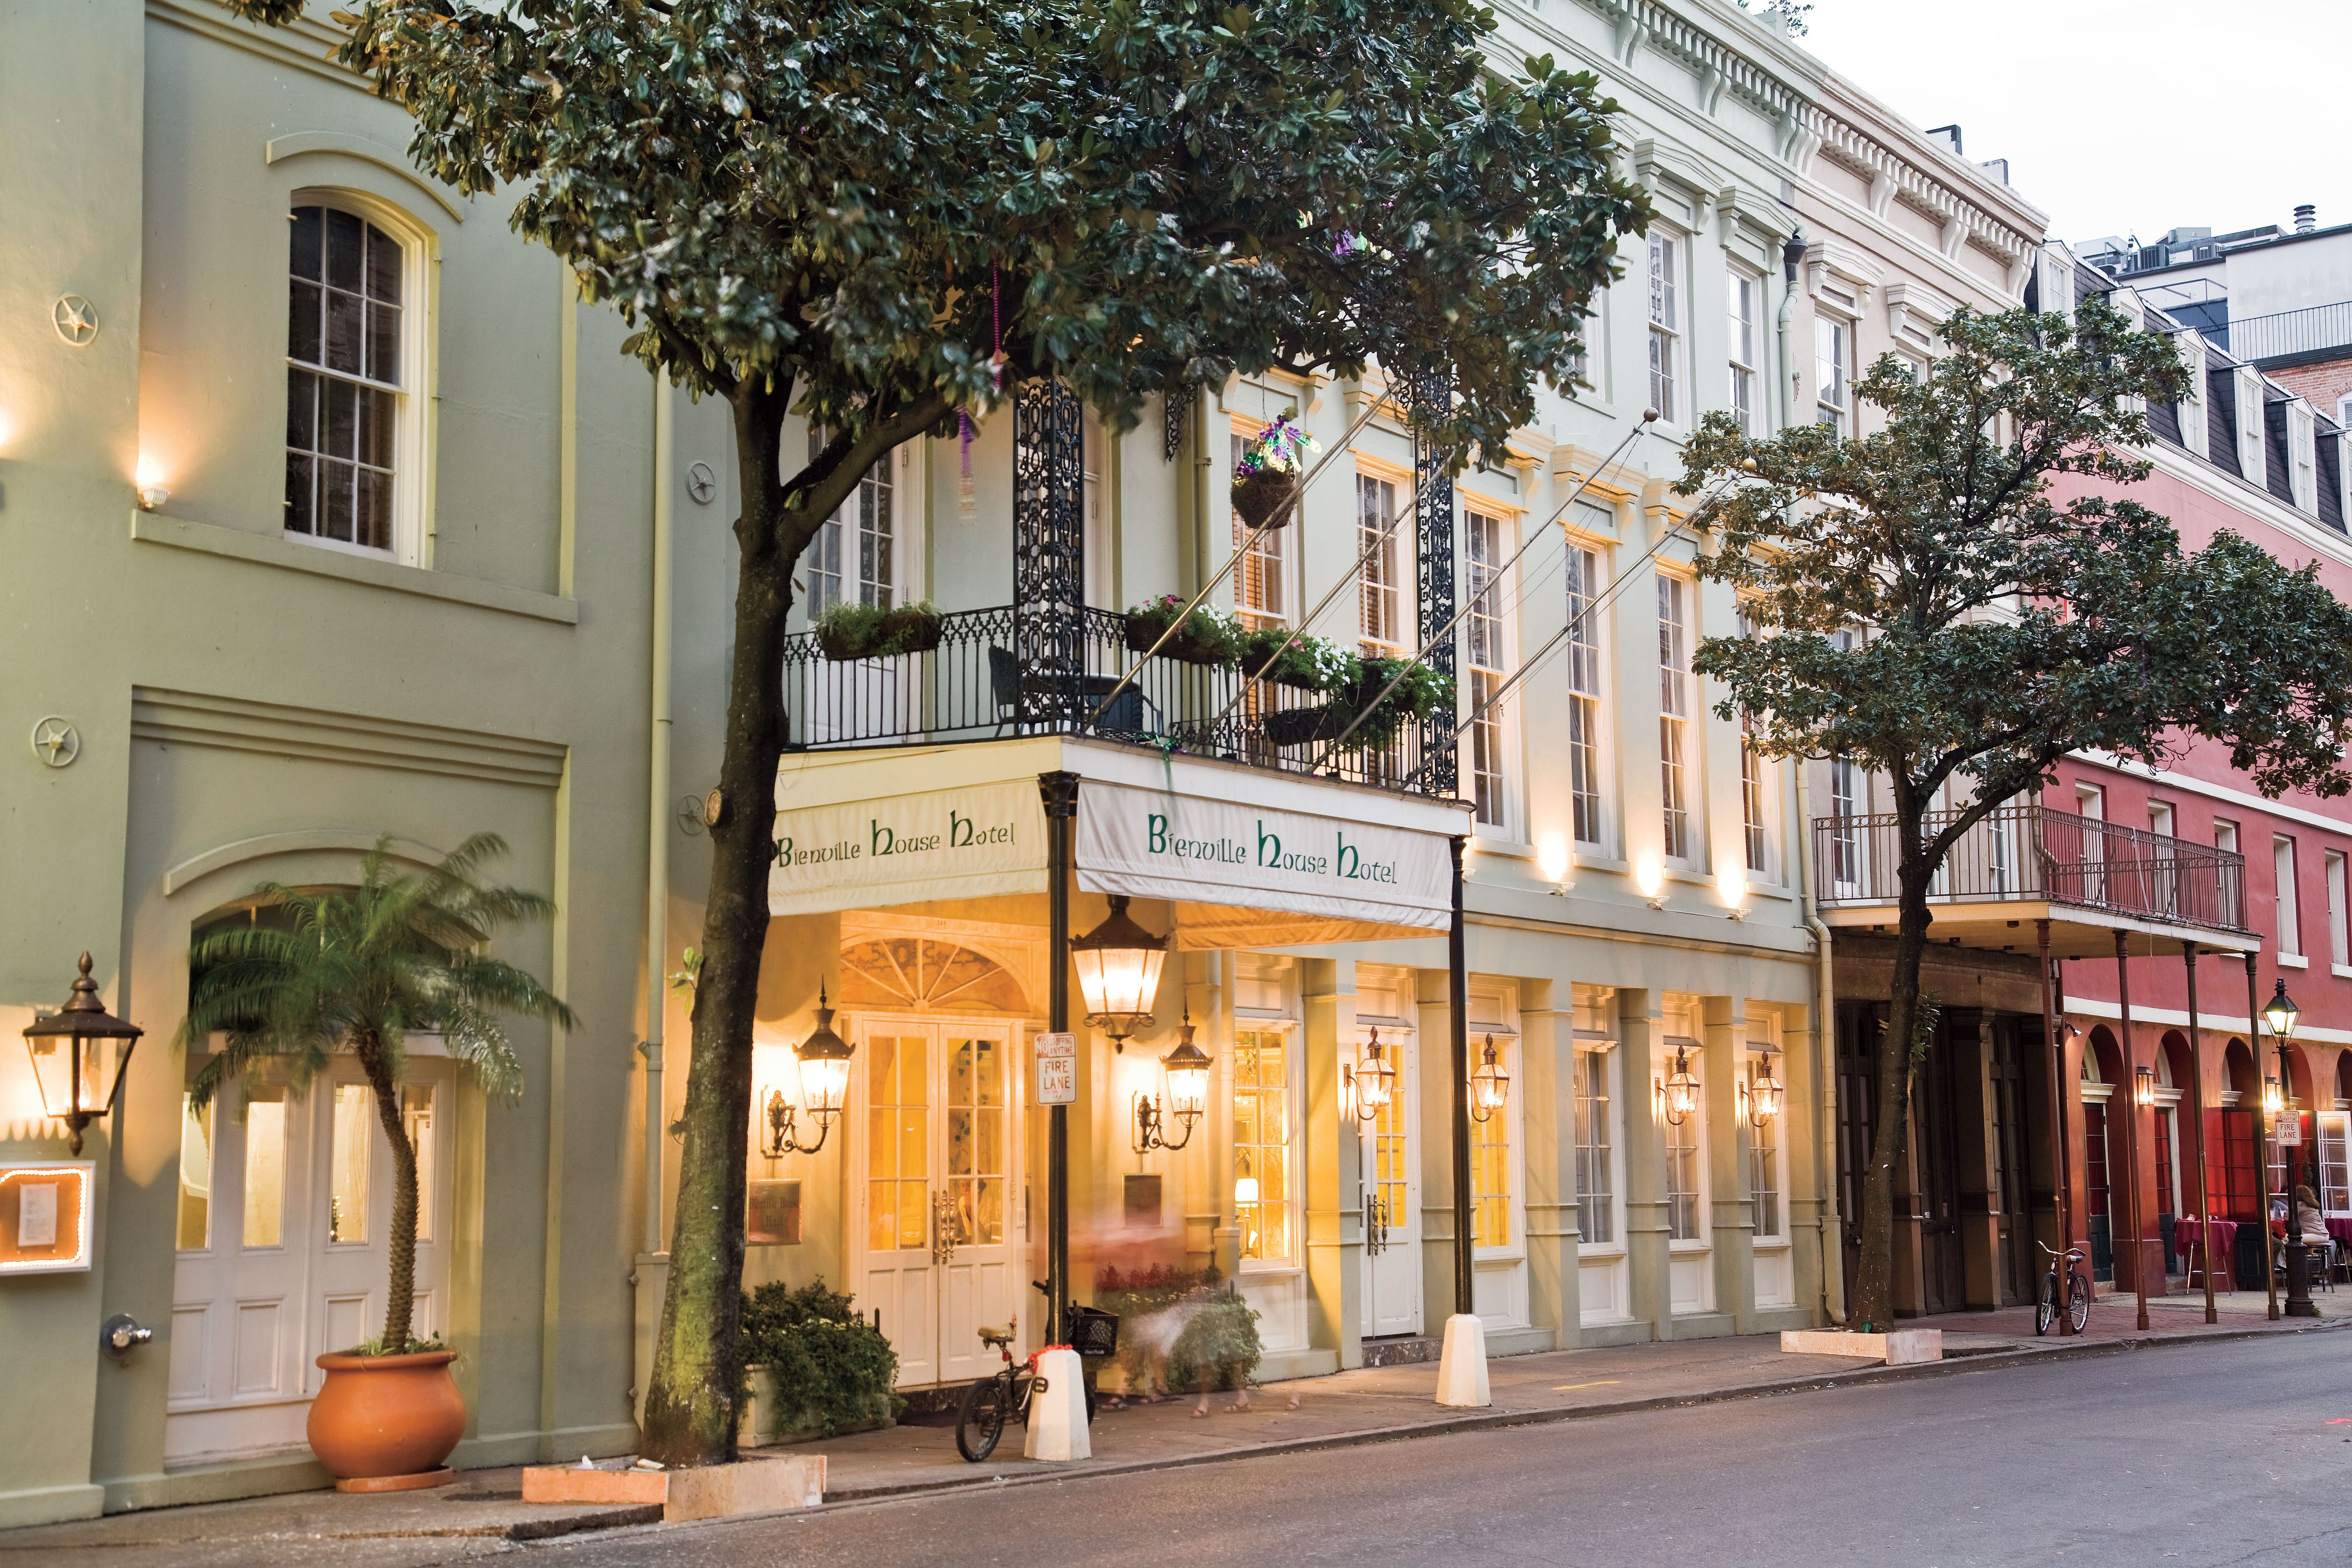 These Nola Hotels Are Hard To Beat All In Or Near The French Quarter They Re Tops For Location Style And Easy Flavor